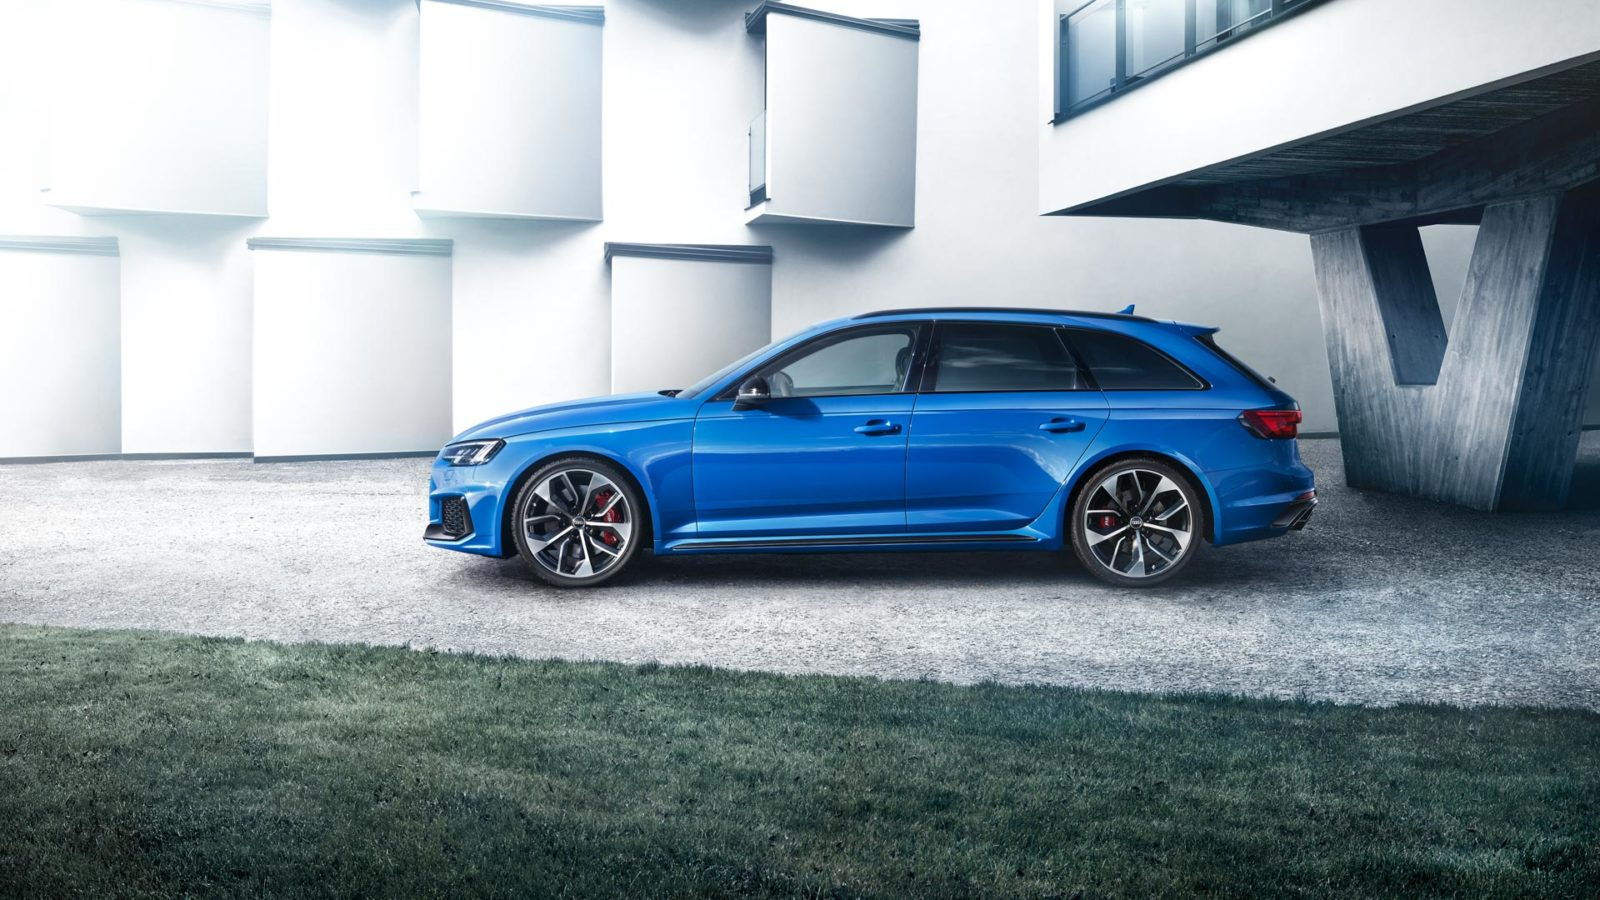 The New Audi Rs4 Avant Packs 450 Horses Which Gallop For